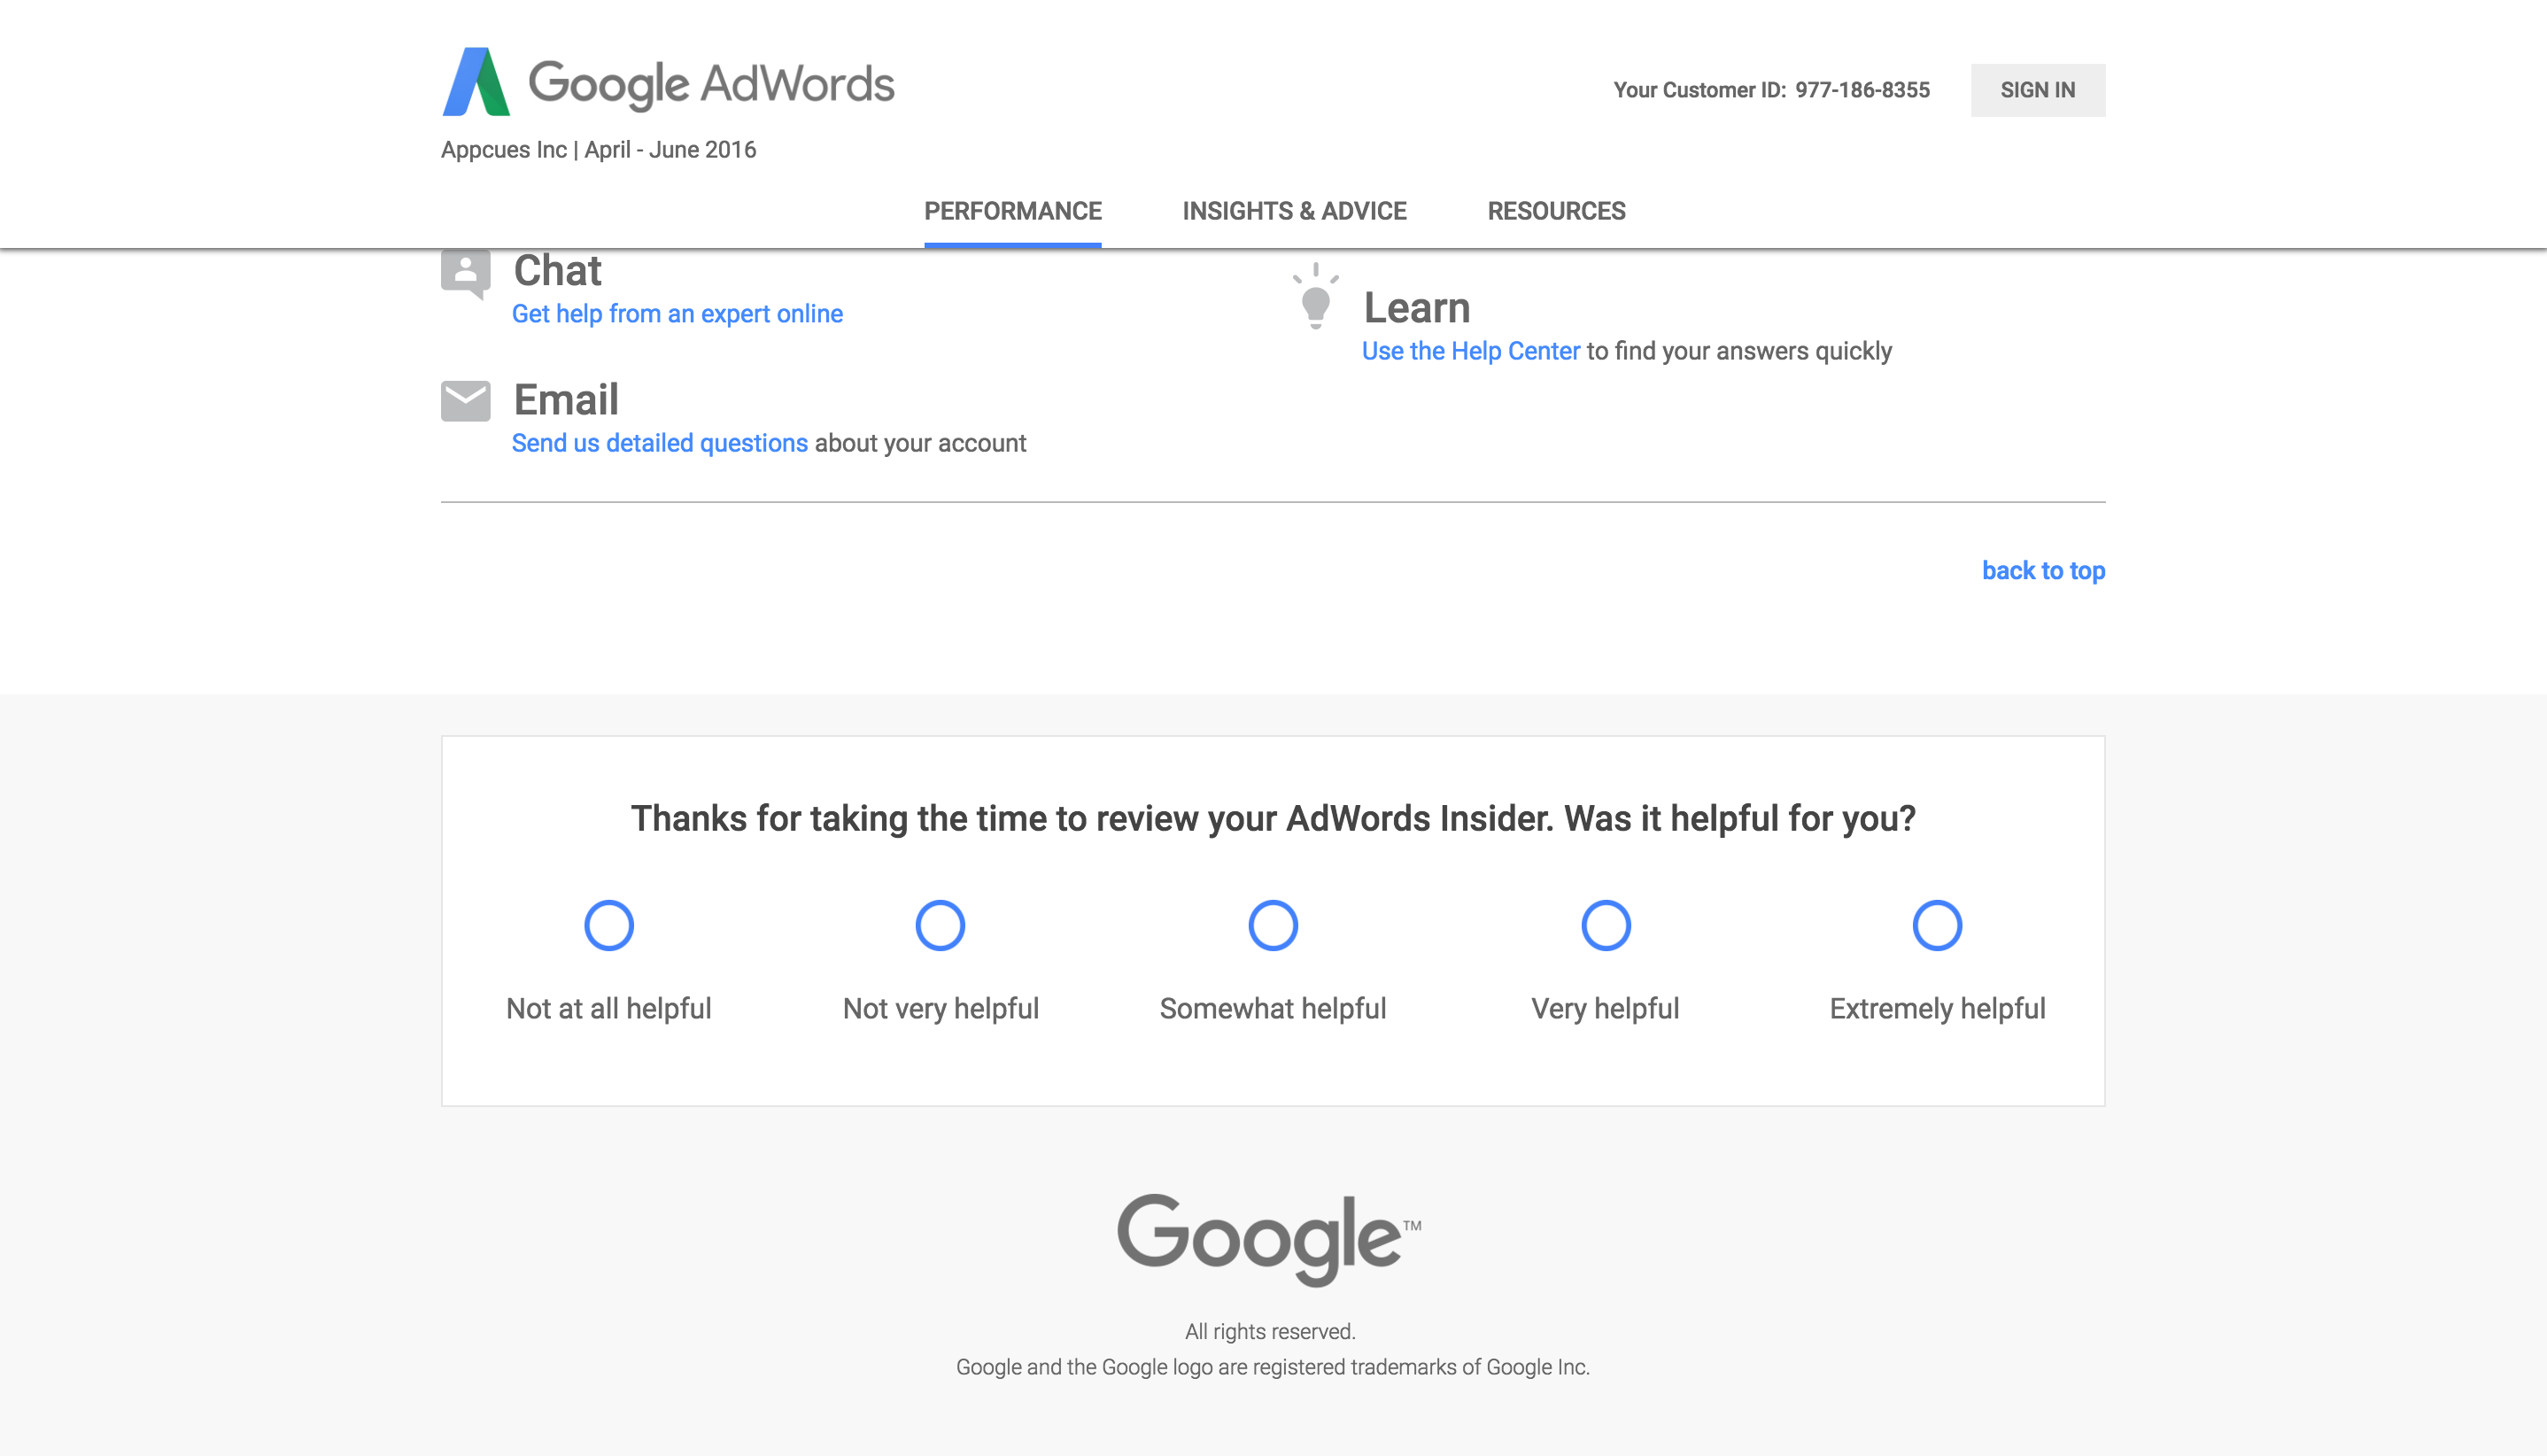 Google's HEART framework shown in it's NPS questionnaire